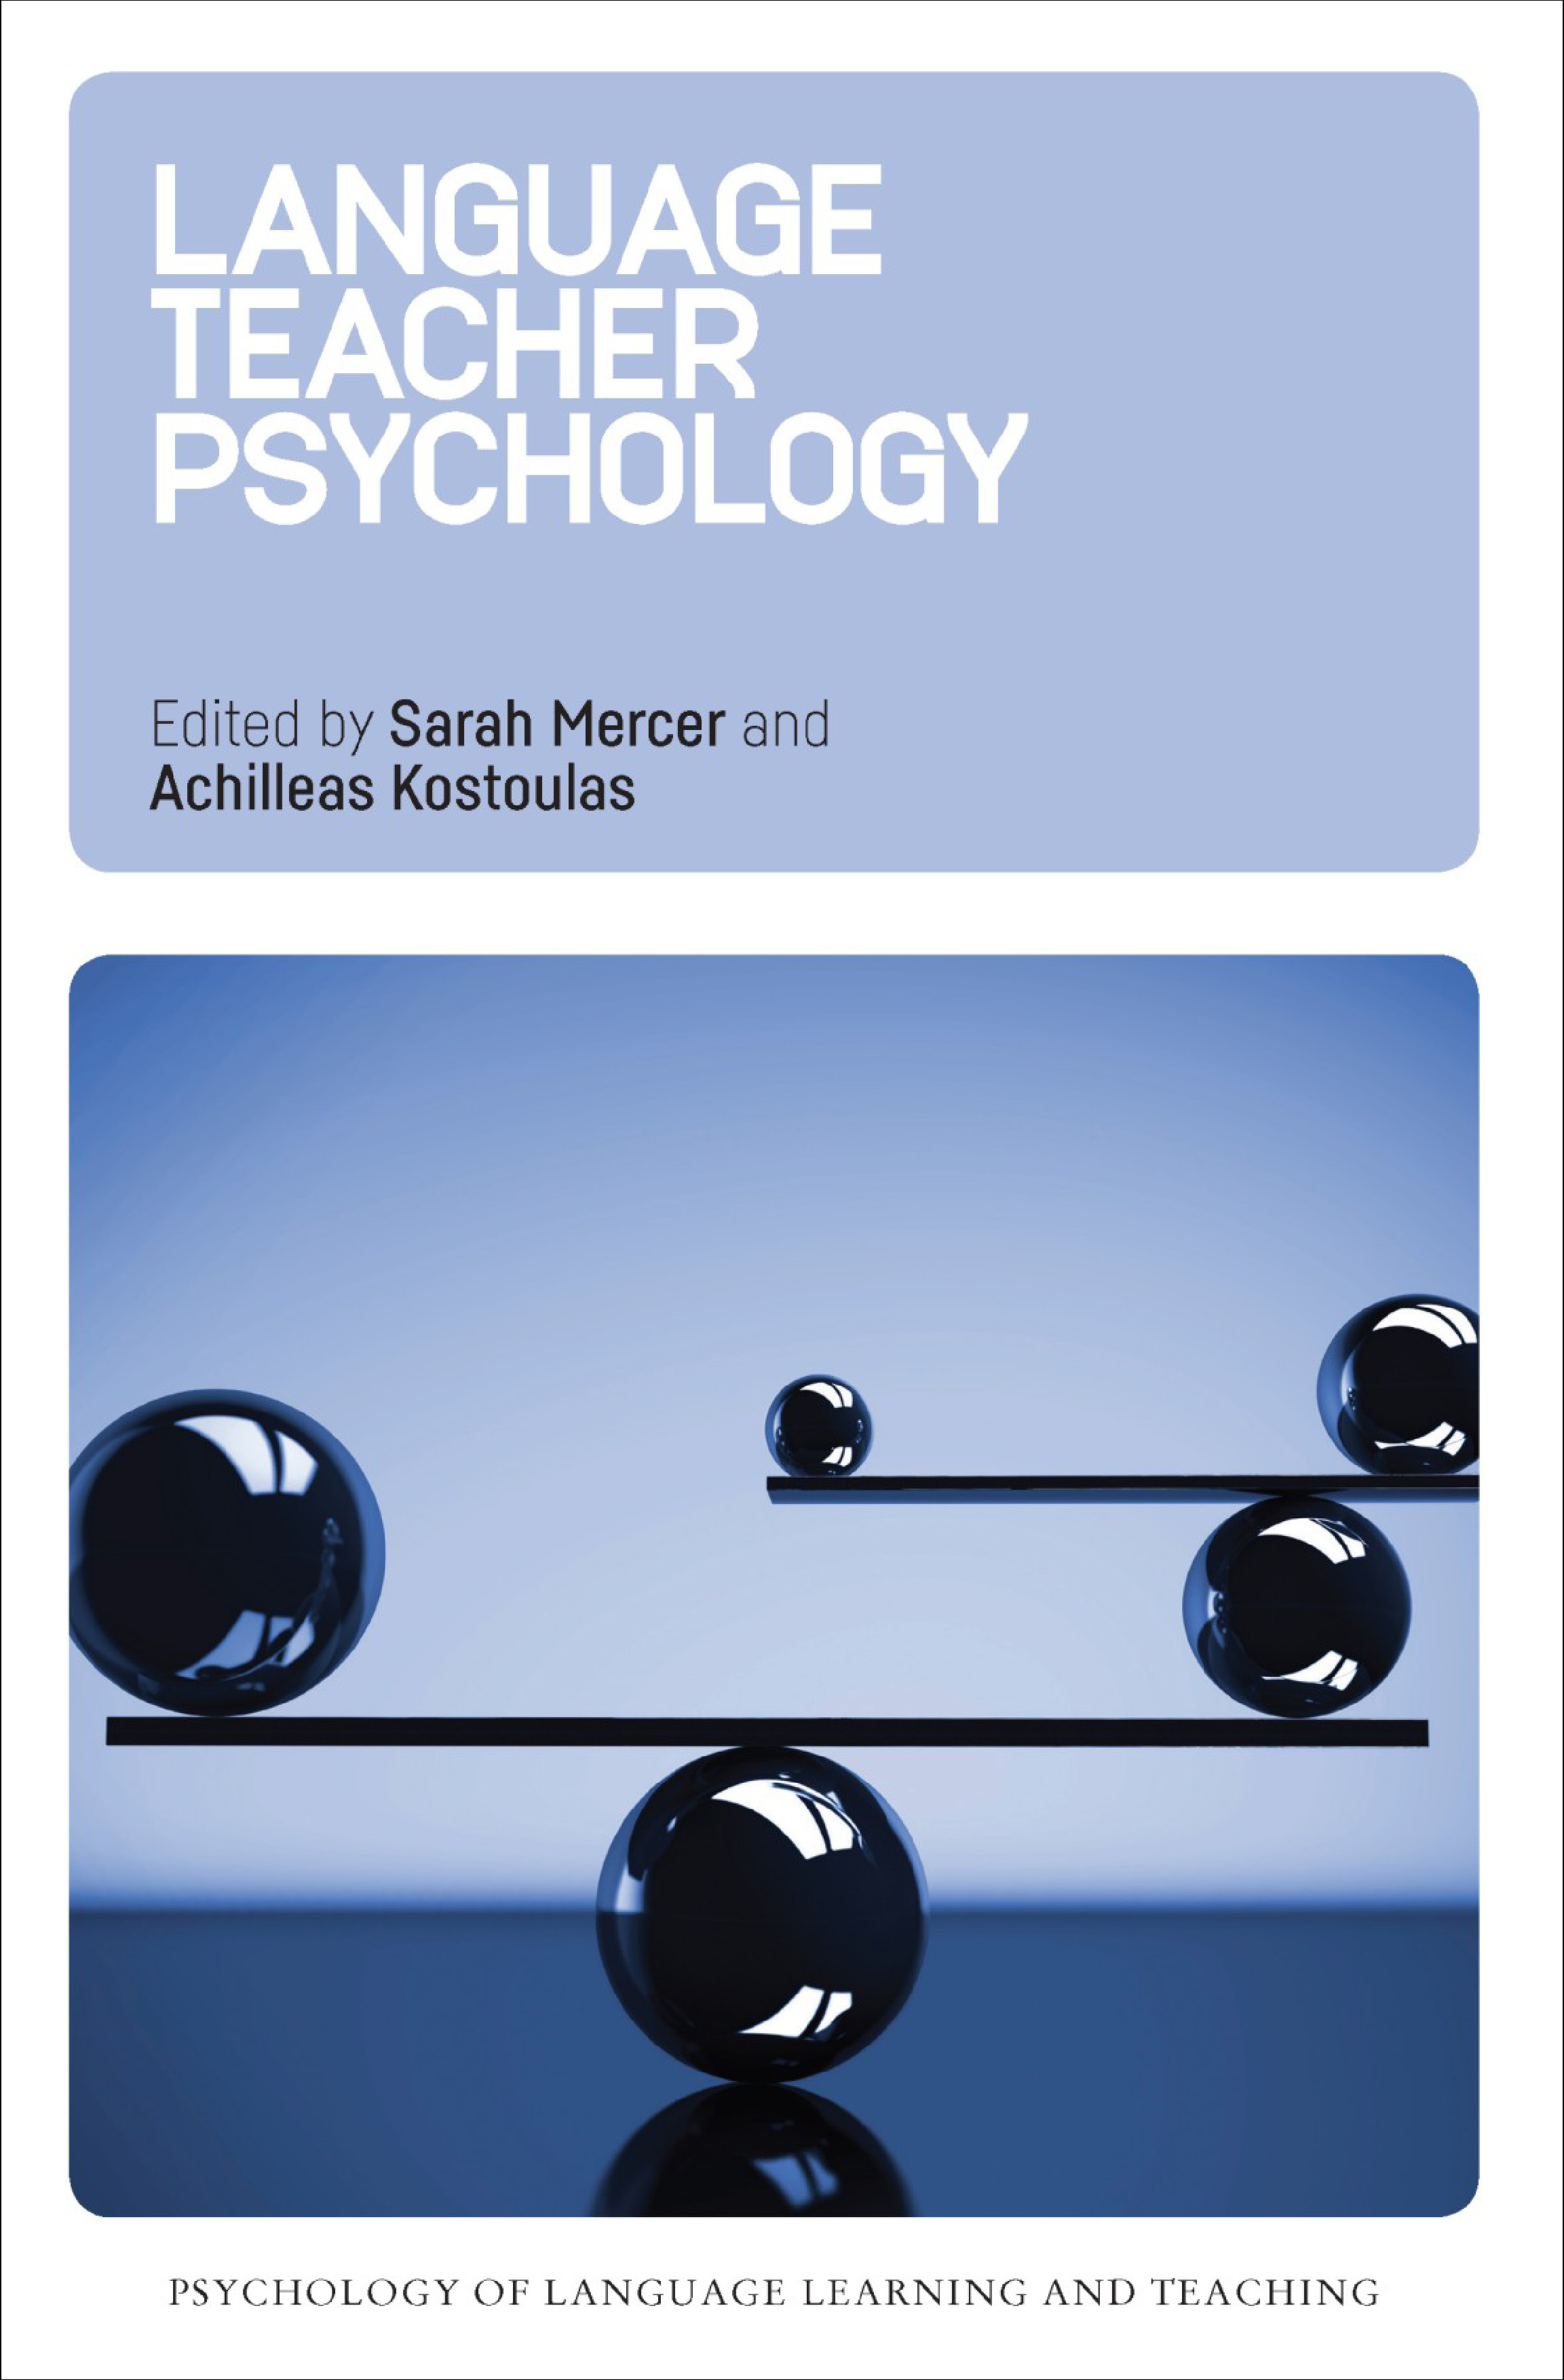 emergence of the field of psychology Psychology emerged over 100 years ago, and developed into a field of  knowledge when researchers began to study various psychological effects.